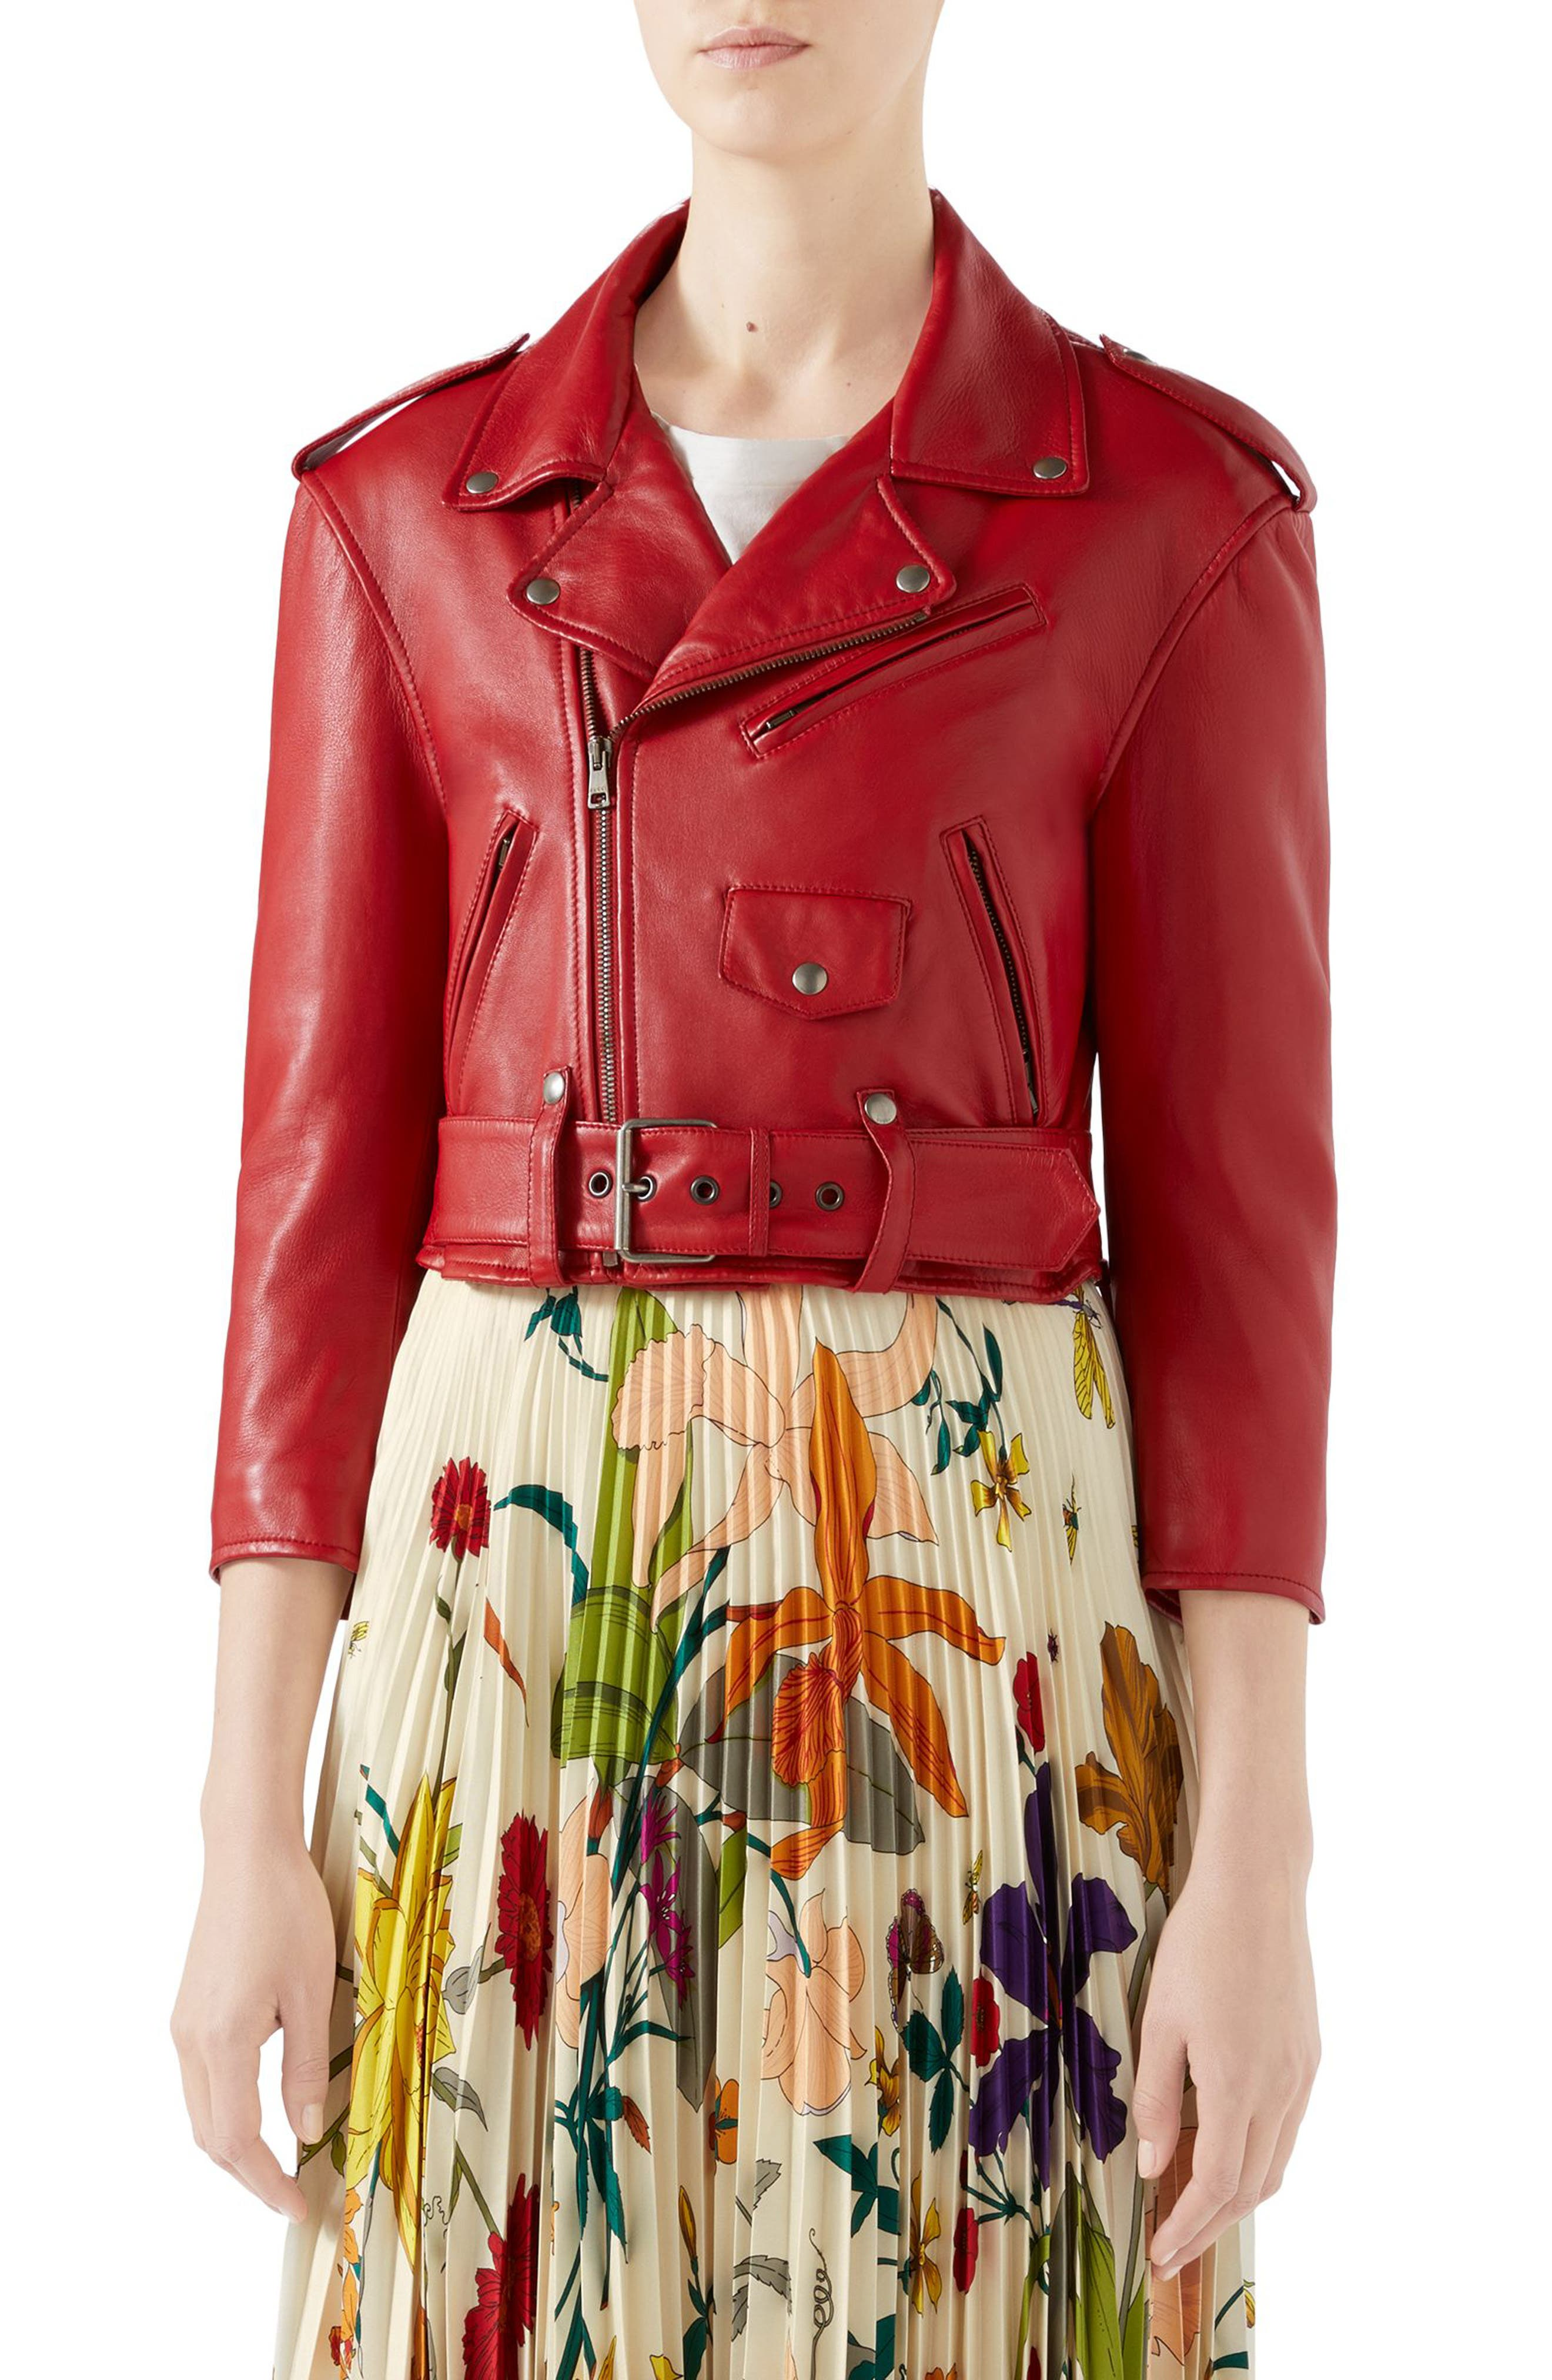 ac7d07eebaf8 Gucci Chateau Marmont Embellished Leather Biker Jacket In Red/ Multicolor